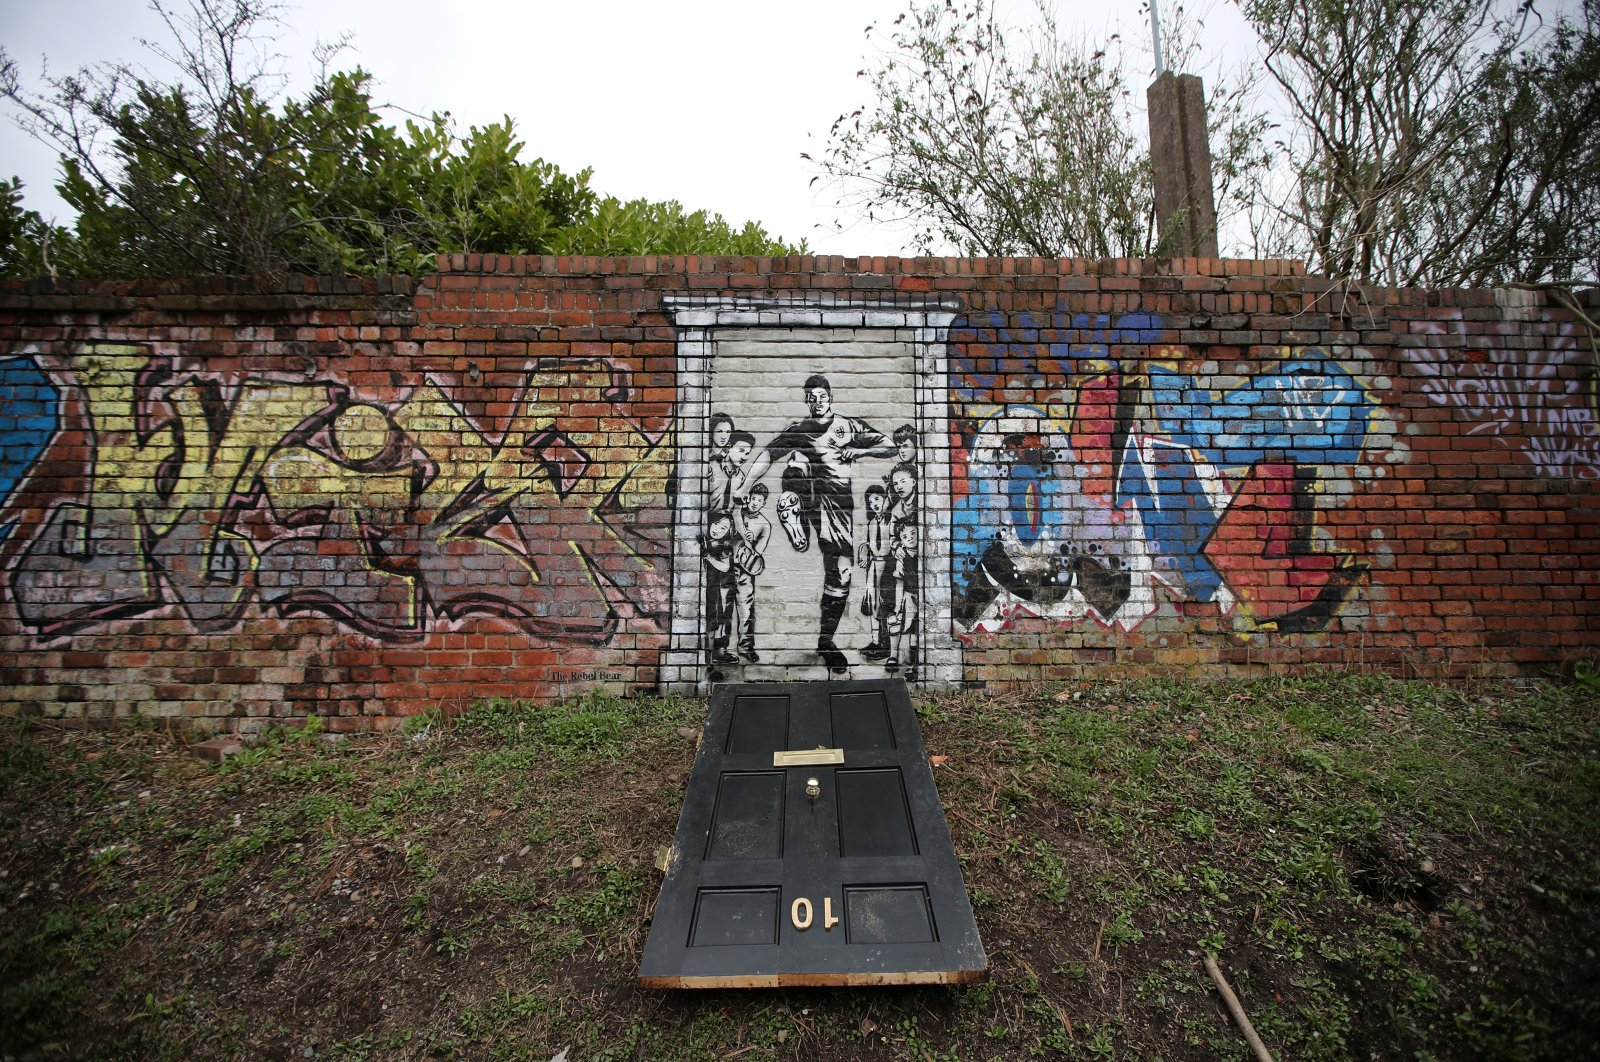 A mural of England footballer Marcus Rashford kicking down the door of No. 10 Downing St. appears on Manchester Canal in Manchester, Britain, March 21, 2021. (Reuters Photo)